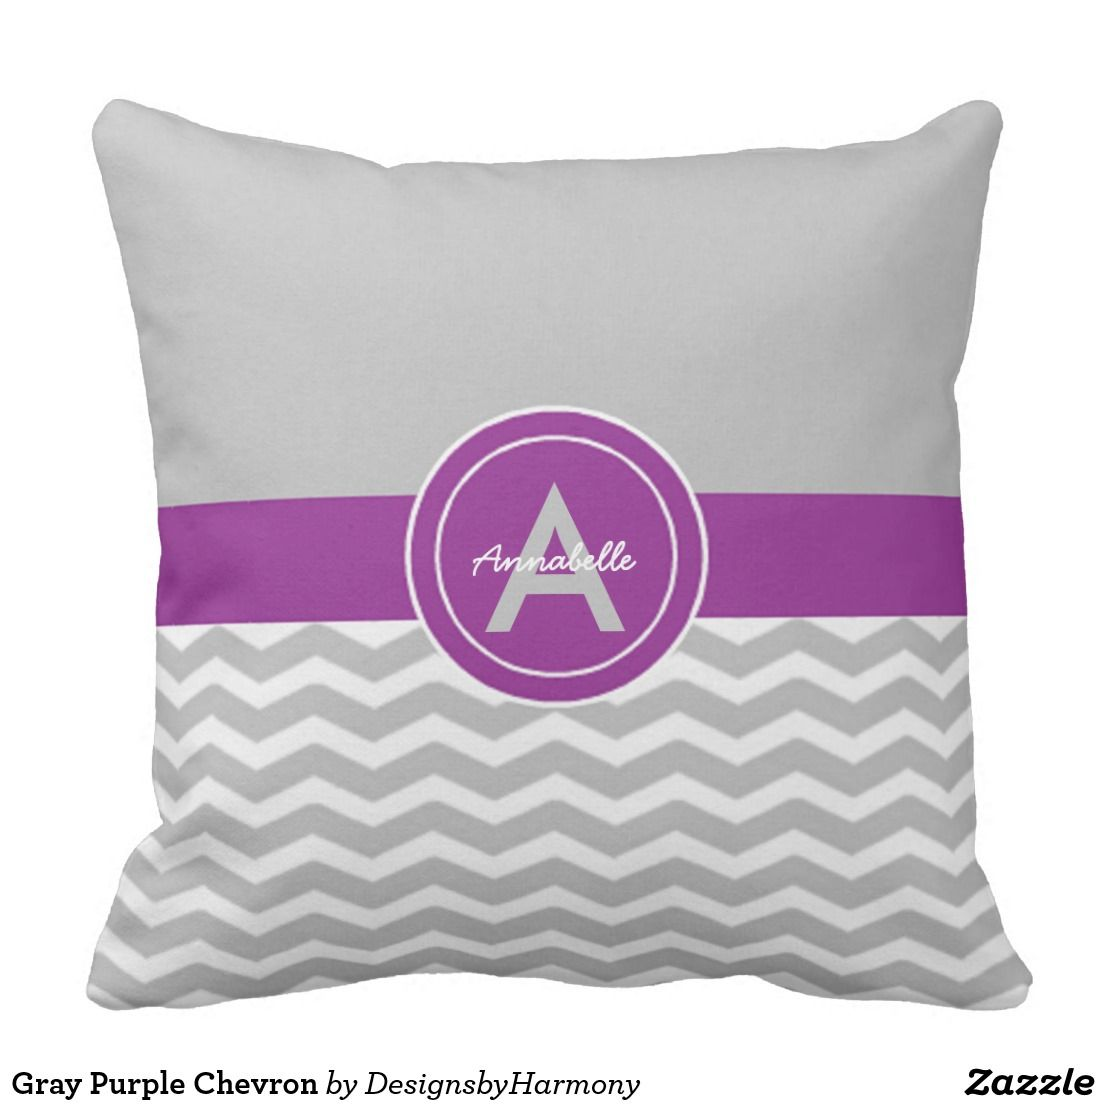 Gray Purple Chevron Throw Pillow